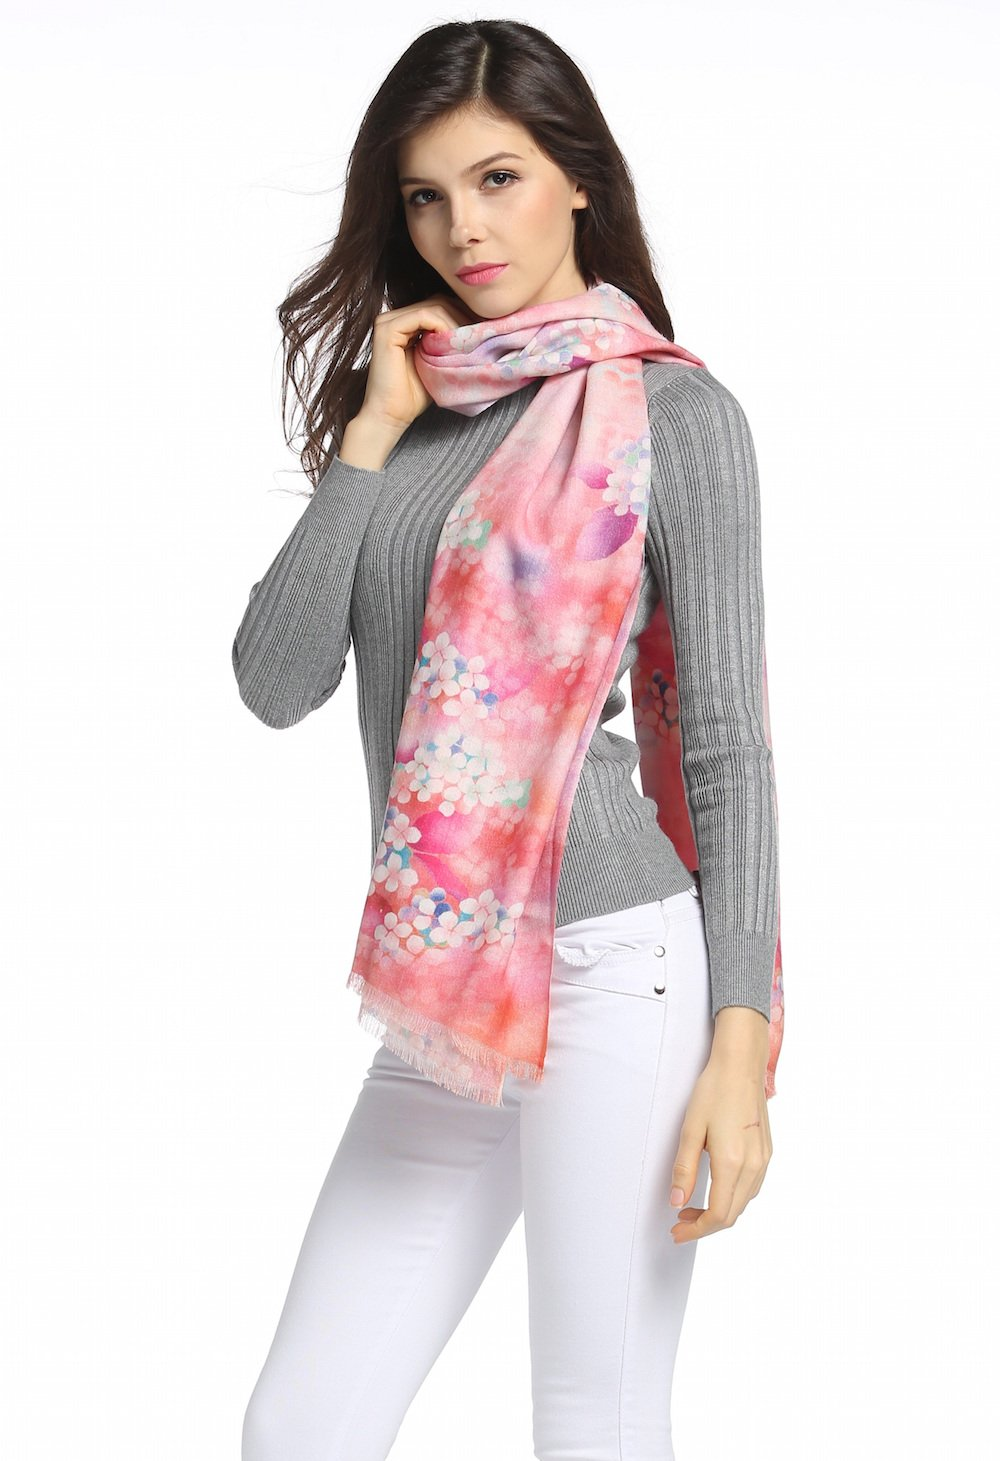 Wool Scarf Winter Scarfs For Women Lightweight Scarves 80s Fine Wool Soft As Cashmere Scarf (Pink Floral)